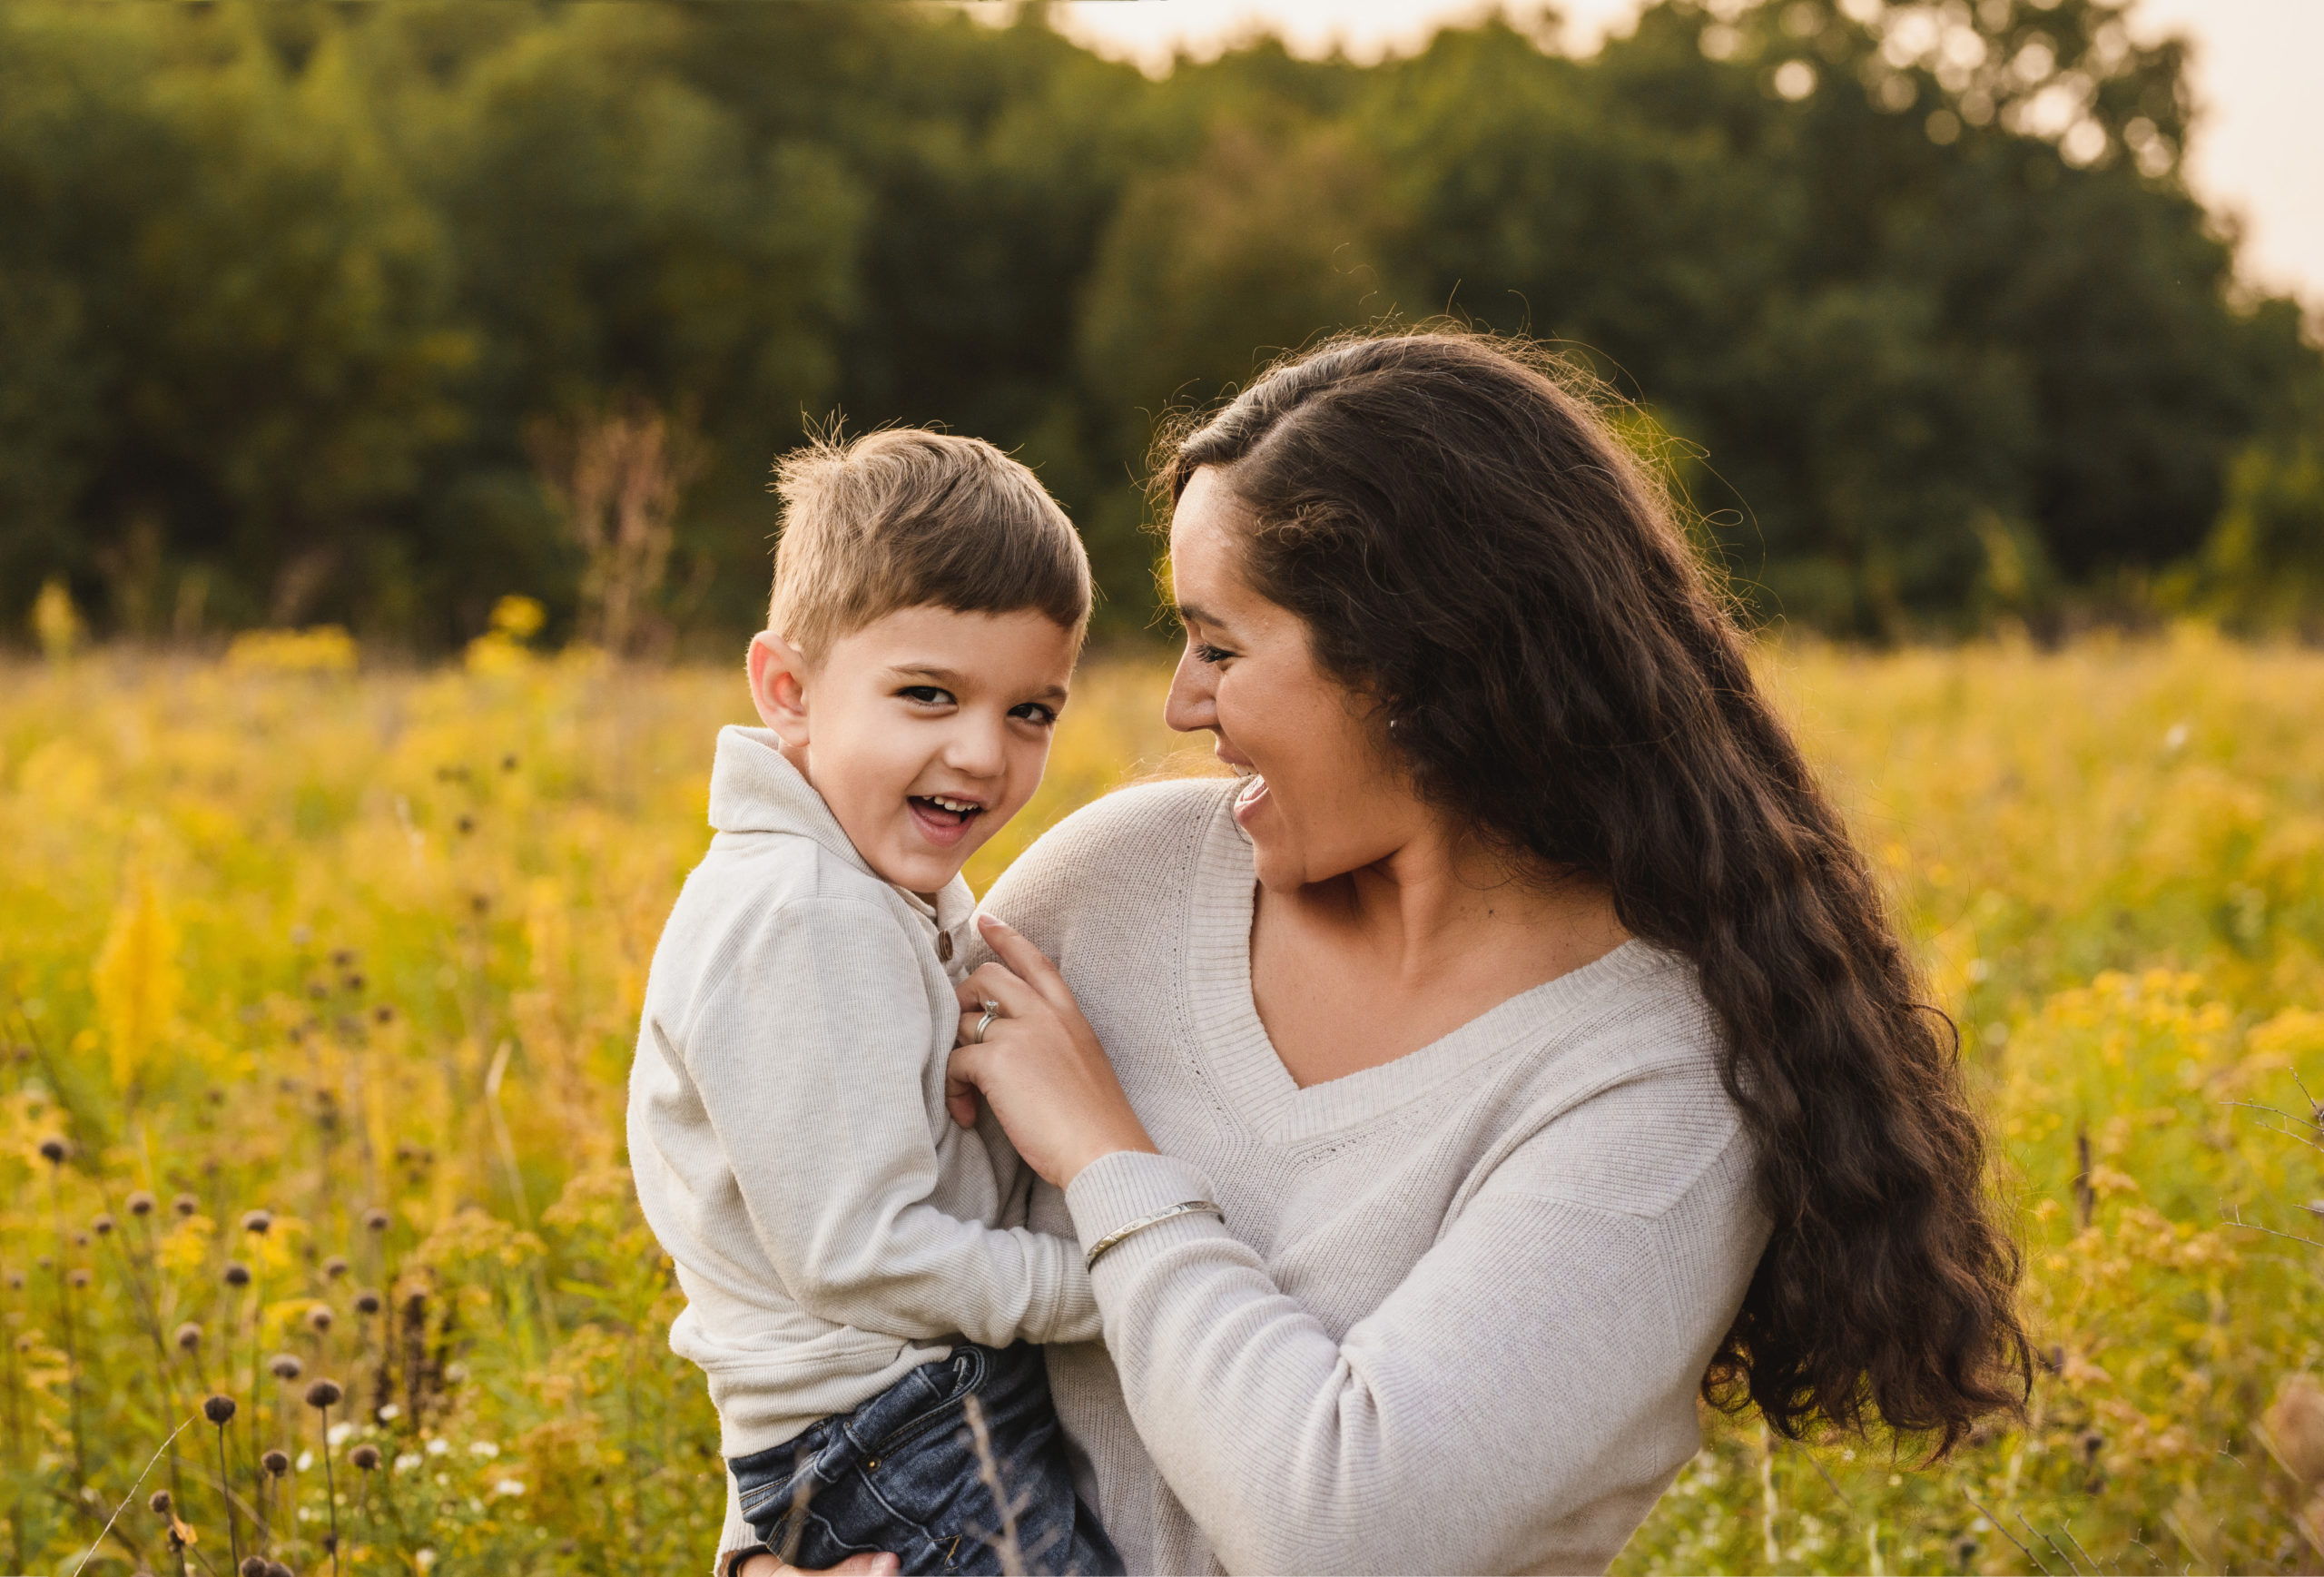 grand rapids family photo session outdoors mother with son